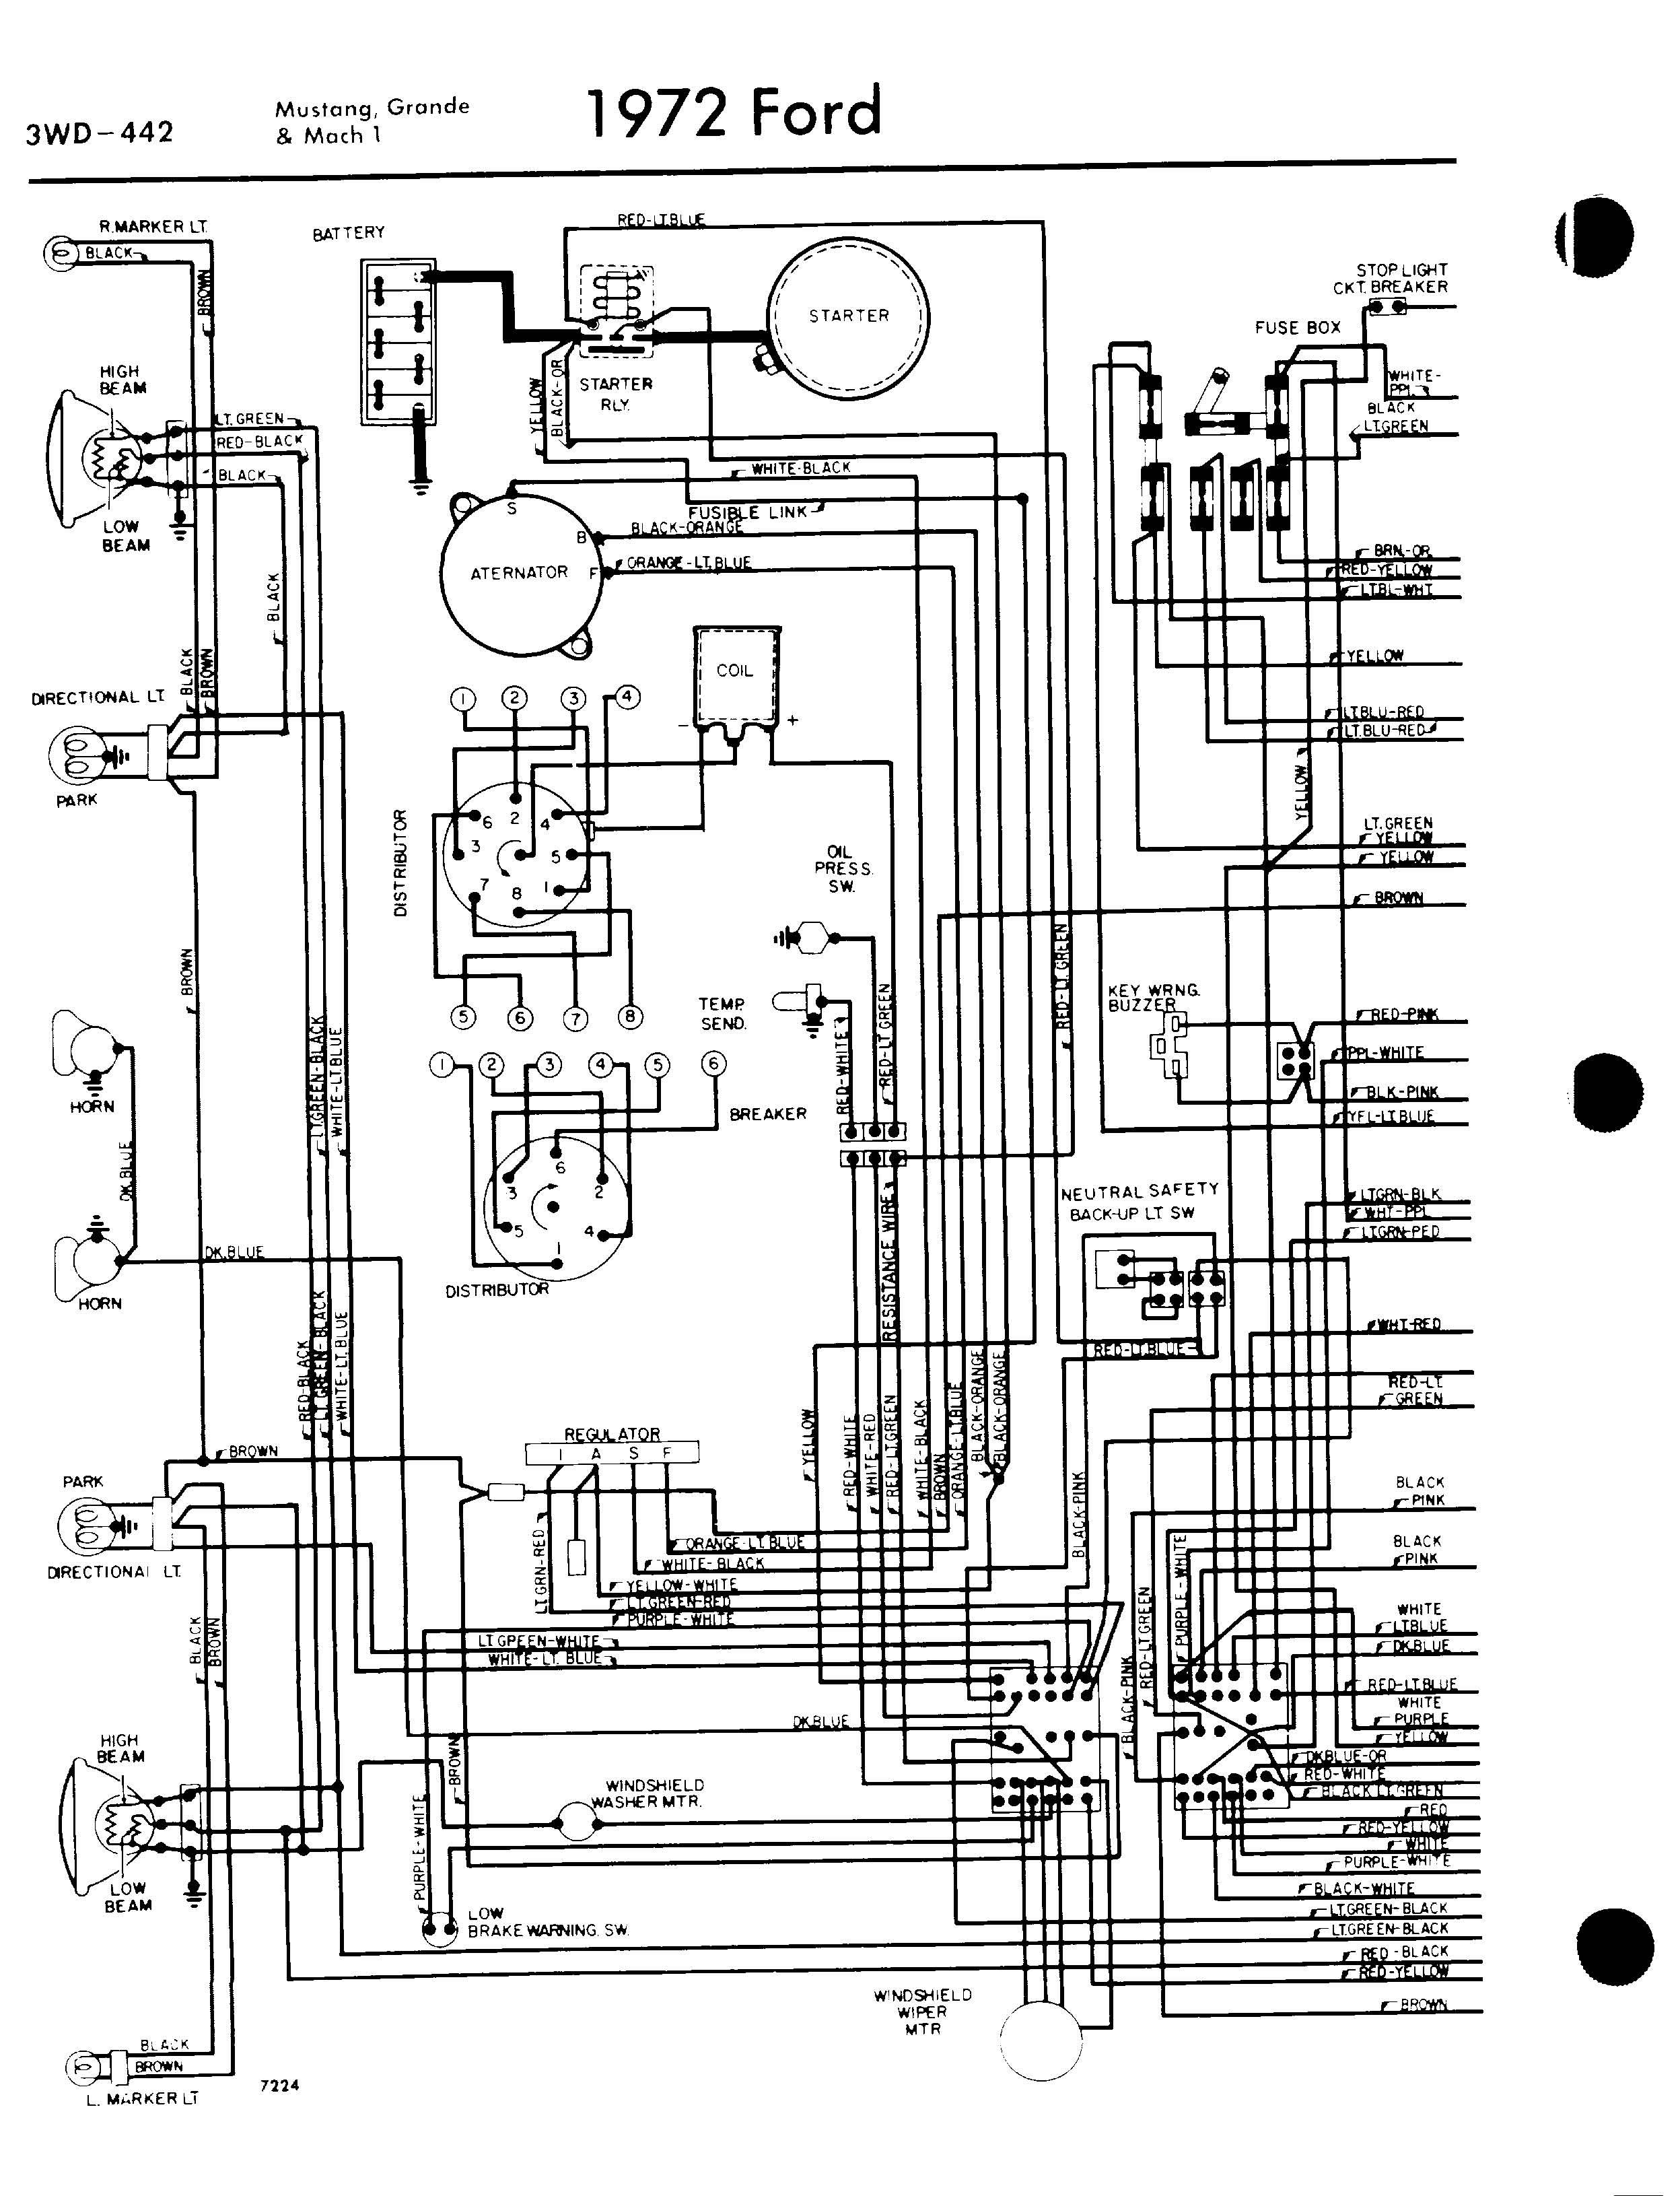 1969 ford mustang radio wiring pontiac wiring diagram simple  small resolution of 1969 ford 302 wiring diagram electrical wiring diagrams ford mustang radio wiring diagram